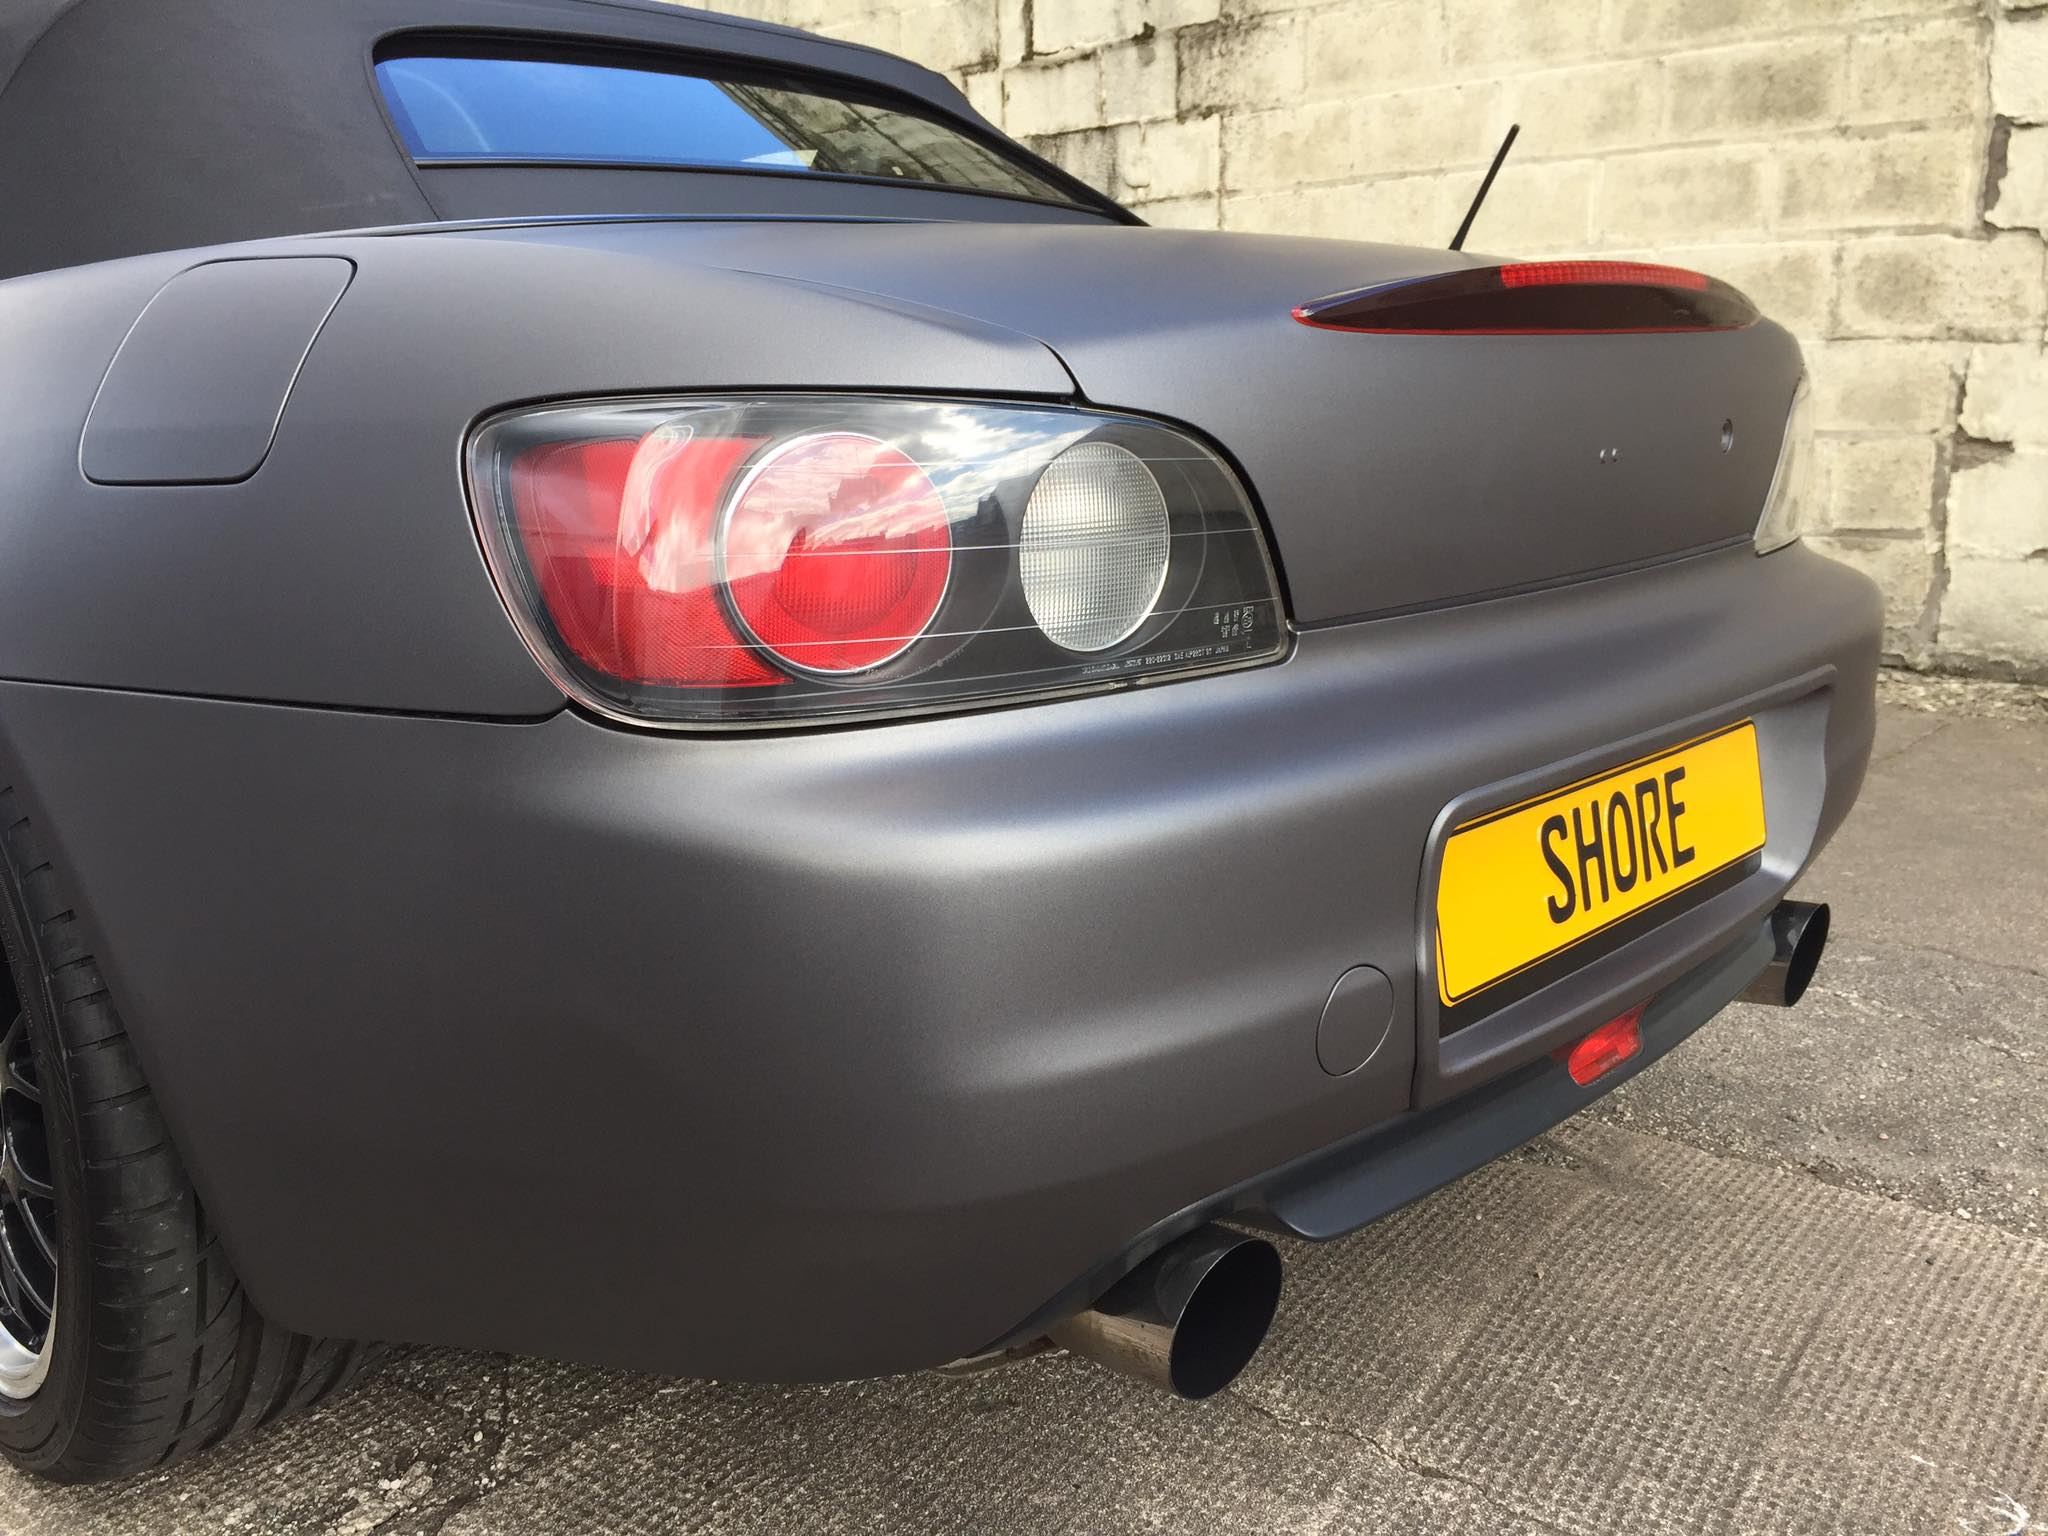 Hinda S2000 Rear Wrapped